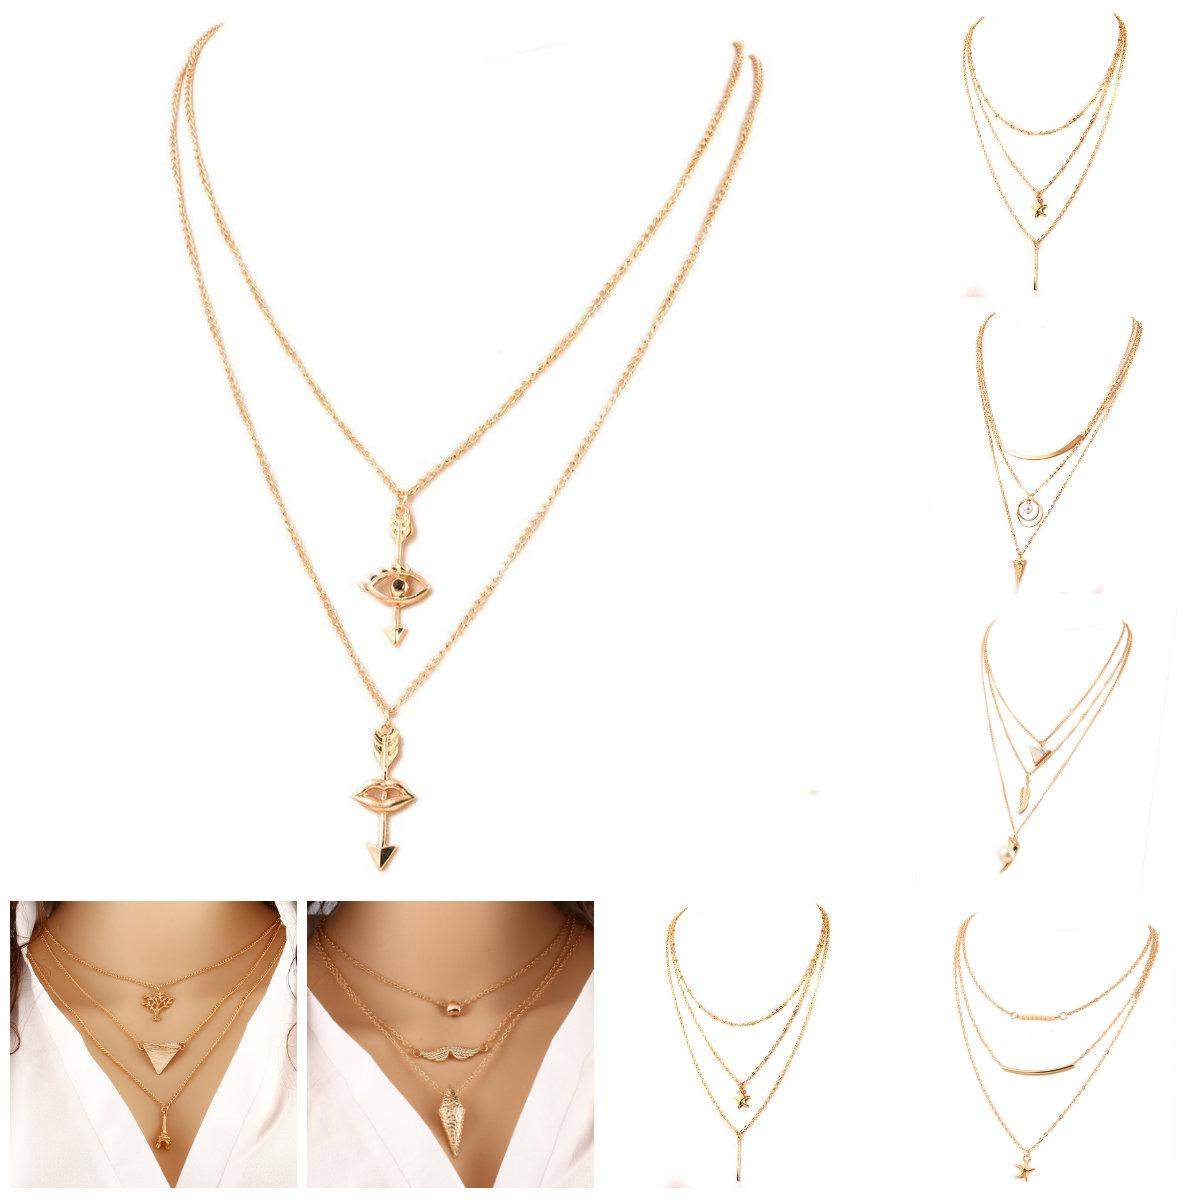 2019 Statement Necklaces Multi Layers 2 Layer Necklaces Marble Rhinestone  Mosaic Long Necklace Collares Wholesale Bijoux Pendants Necklaces From  Huierjew 2c4391157006